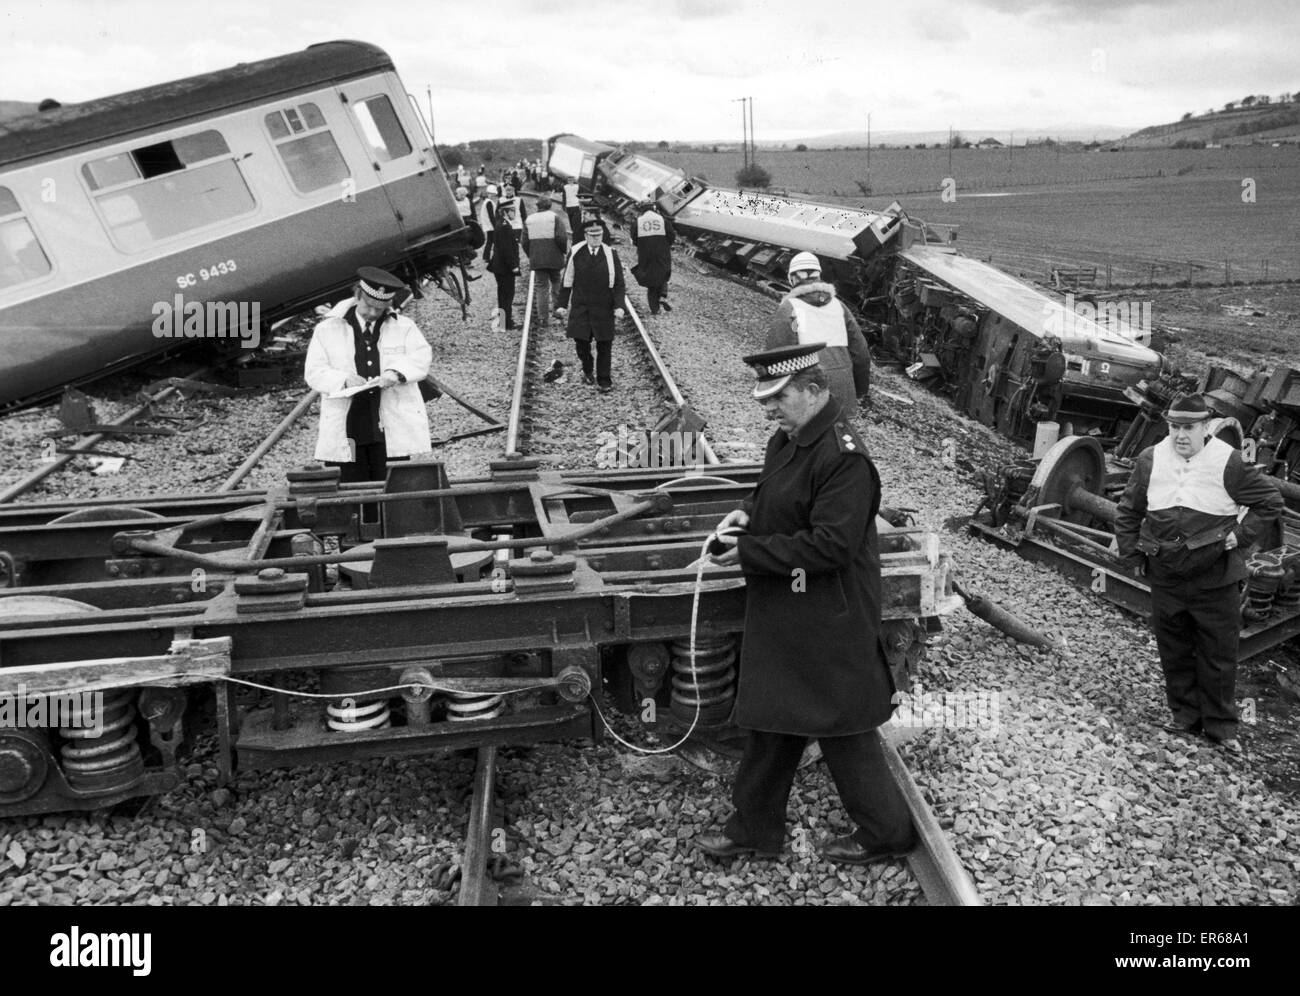 Railway Accident Black and White Stock Photos & Images - Alamy